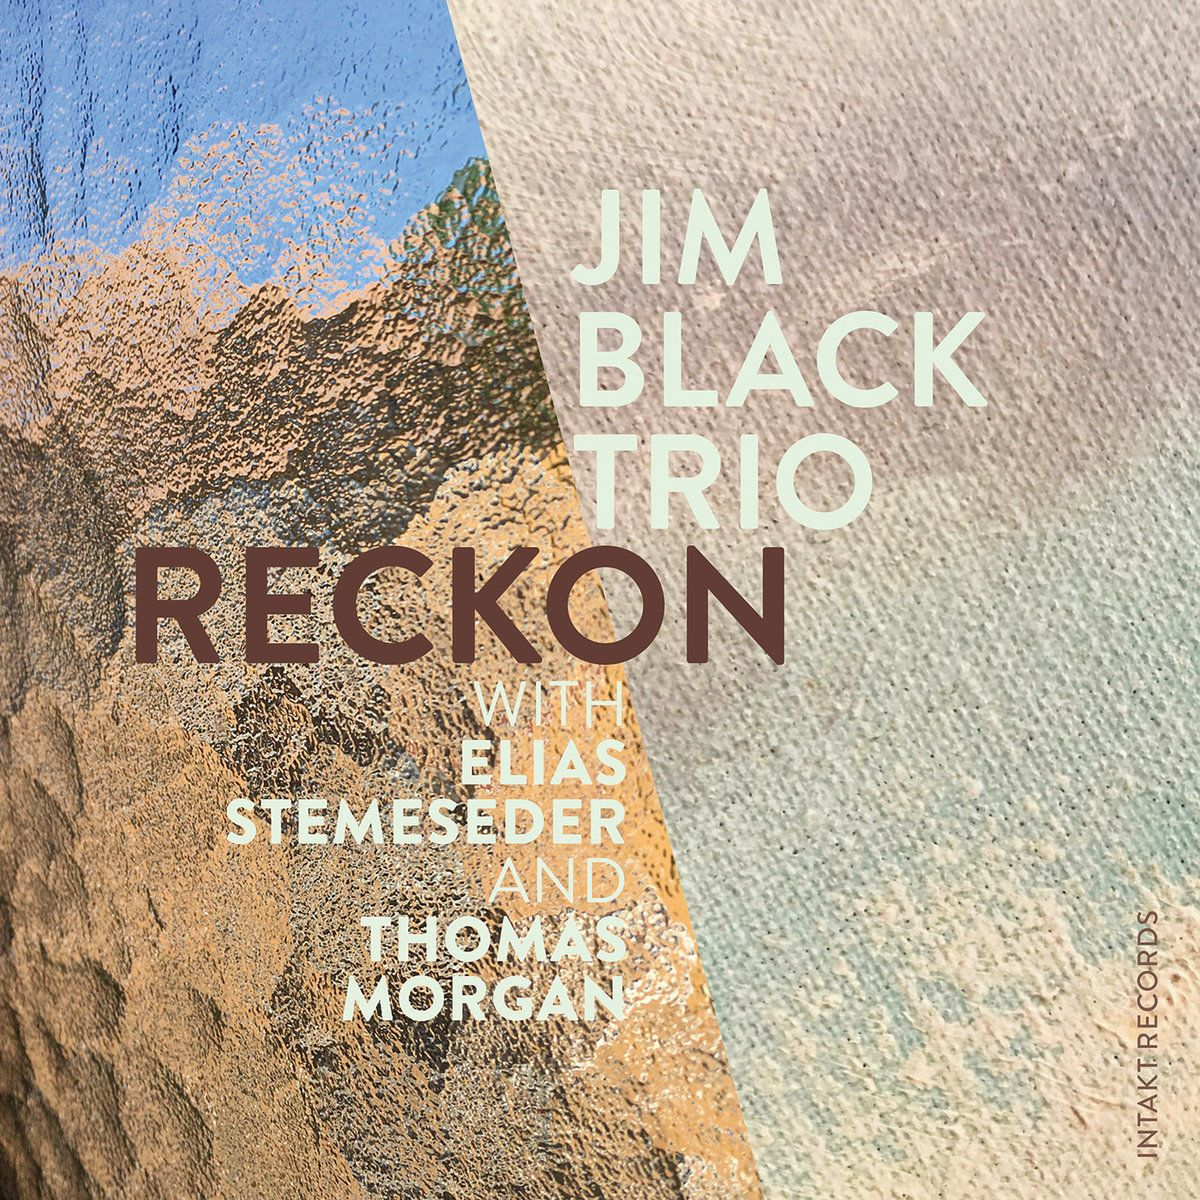 Jim Black Trio